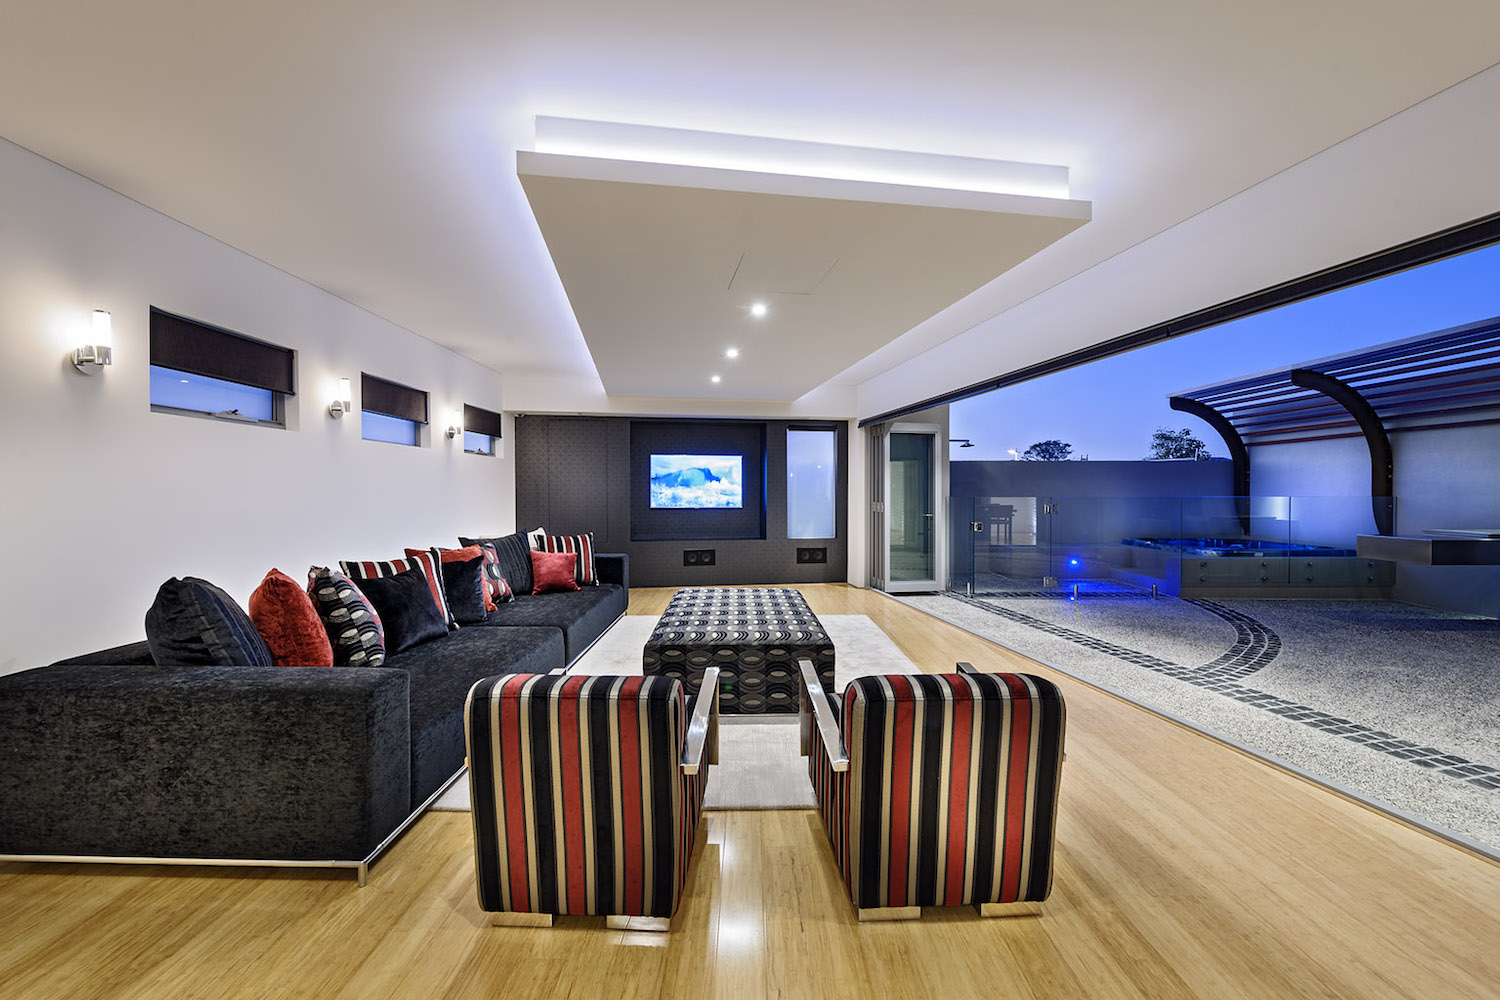 Residential Attitudes - Open plan room with large tv, couche and open doors